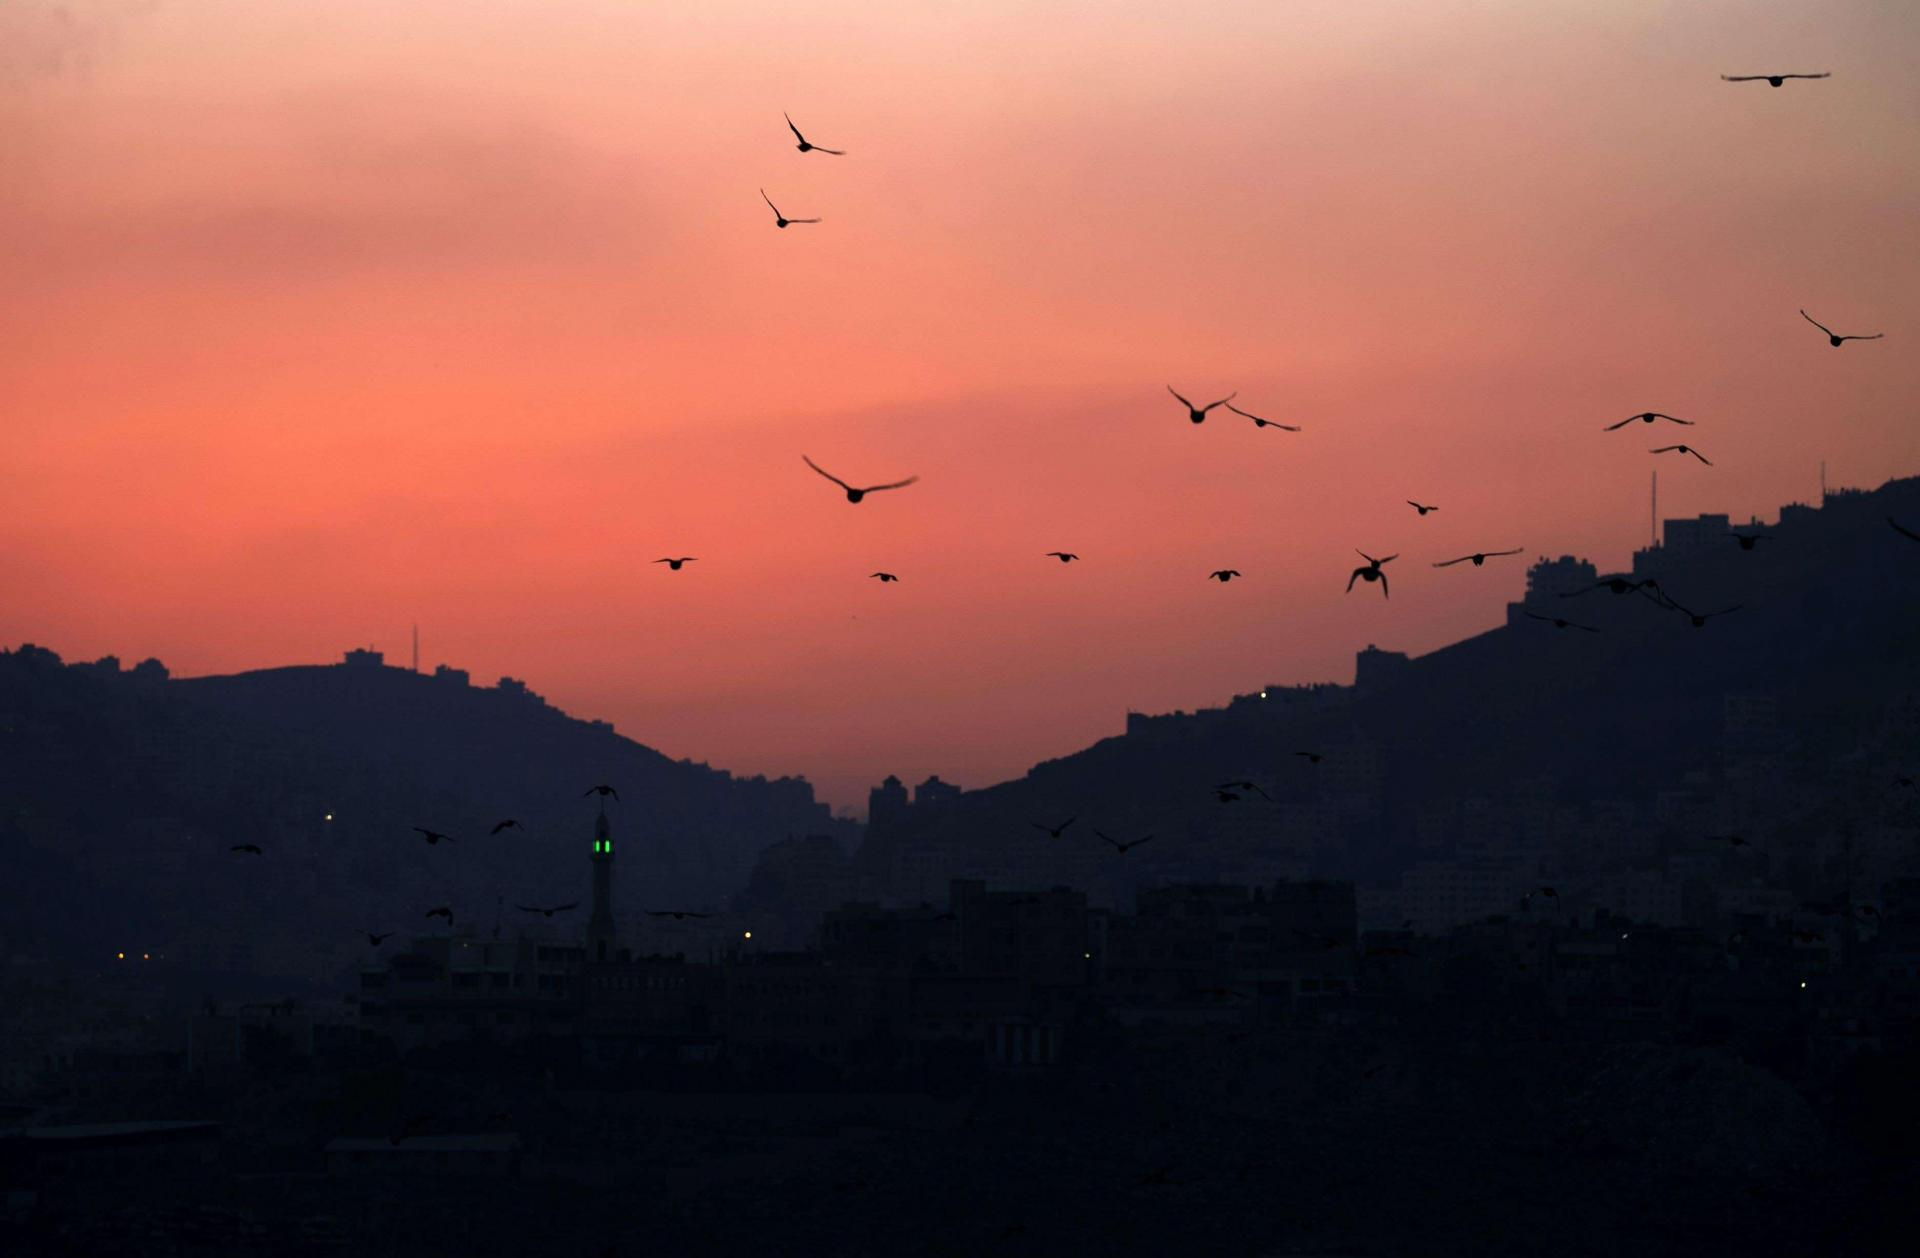 Around 500 million birds migrate through Israel and the Palestinian territories each year